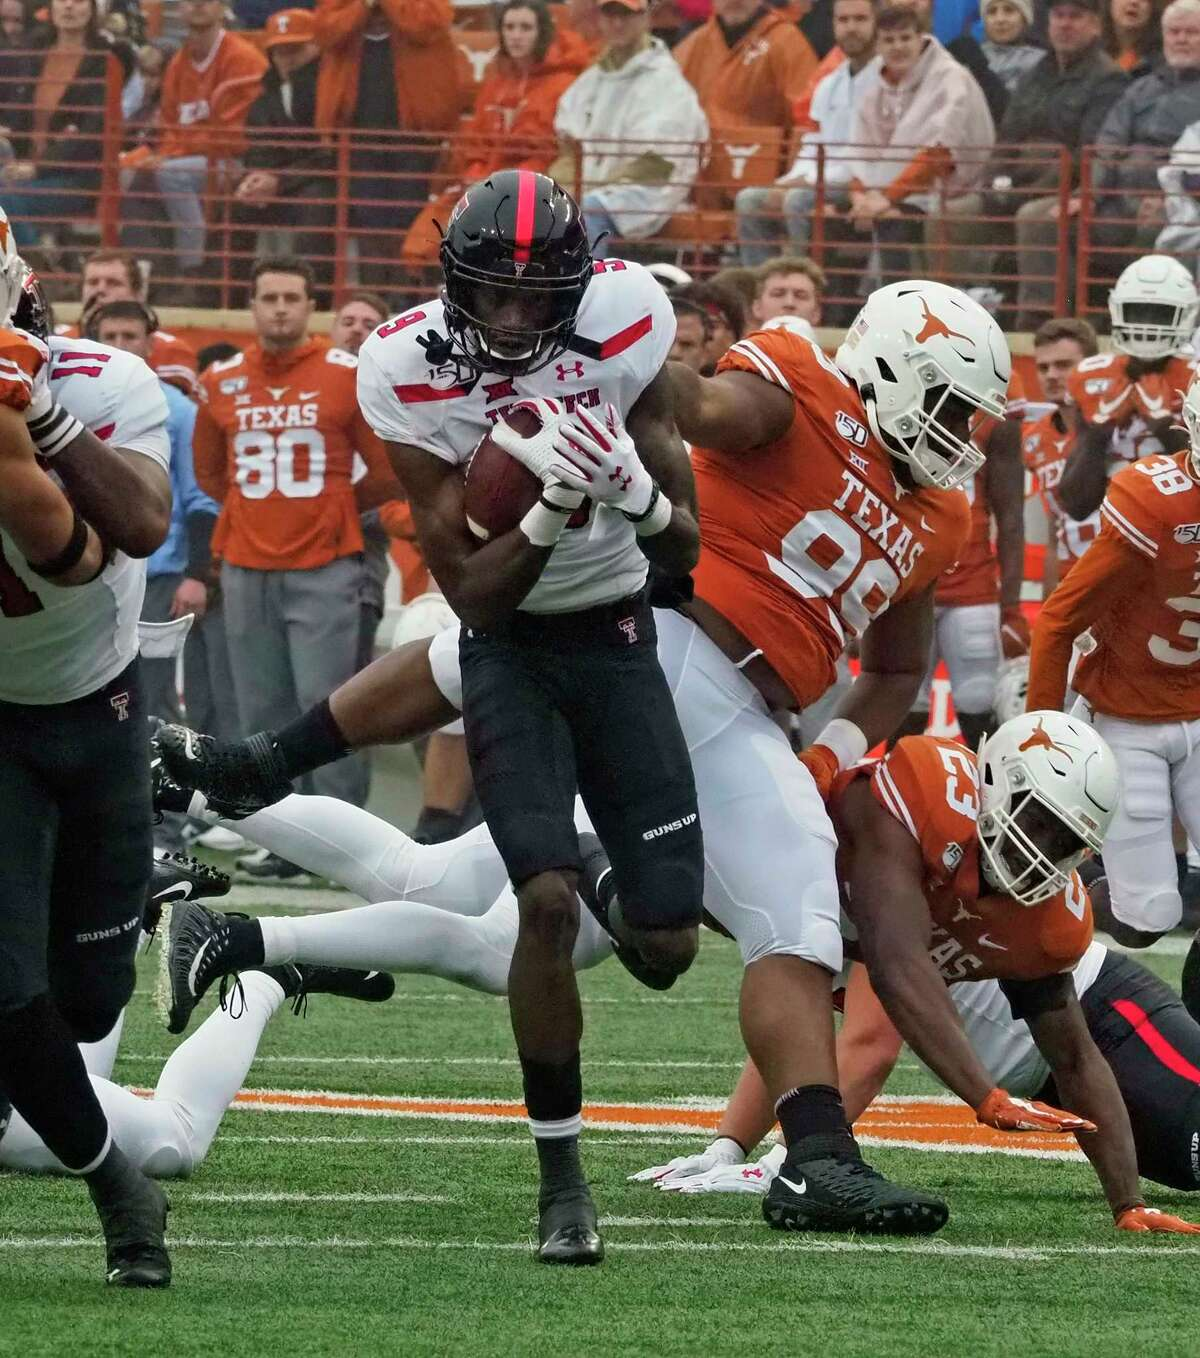 Texas Tech receiver T.J. Vasher (9) runs after a catch during the first half of an NCAA college football game, against Texas, Friday, Nov. 29, 2019, in Austin, Texas. (AP Photo/Michael Thomas)